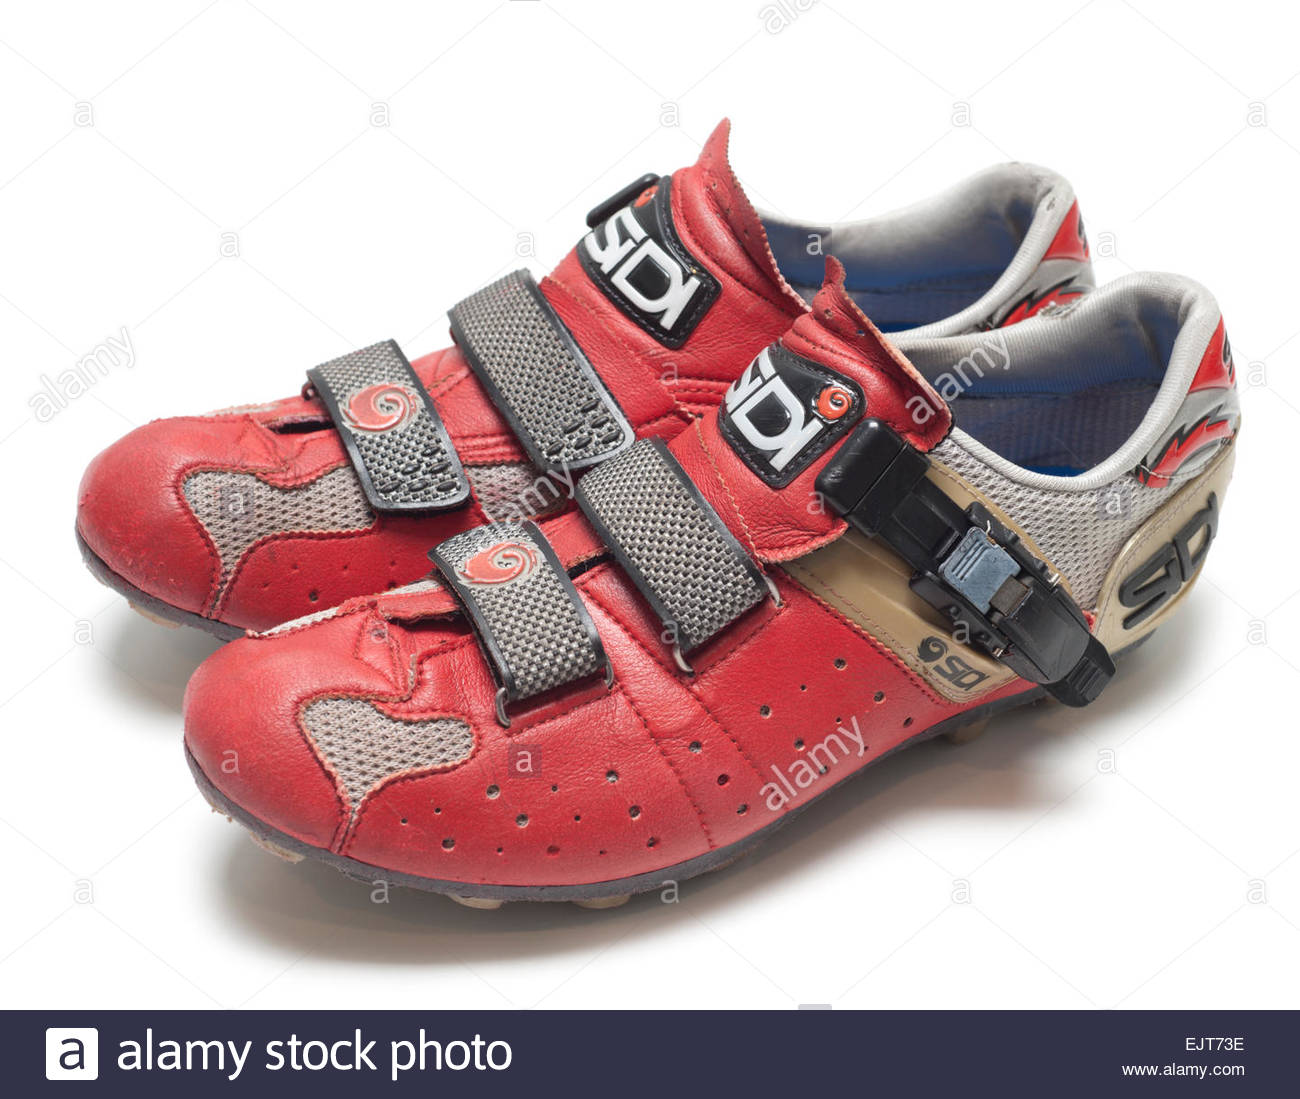 Sidi Dominator Mountain Biking Shoes Red Leather Used Worn Old have been on many trails. Professional Cycling made - Stock Image